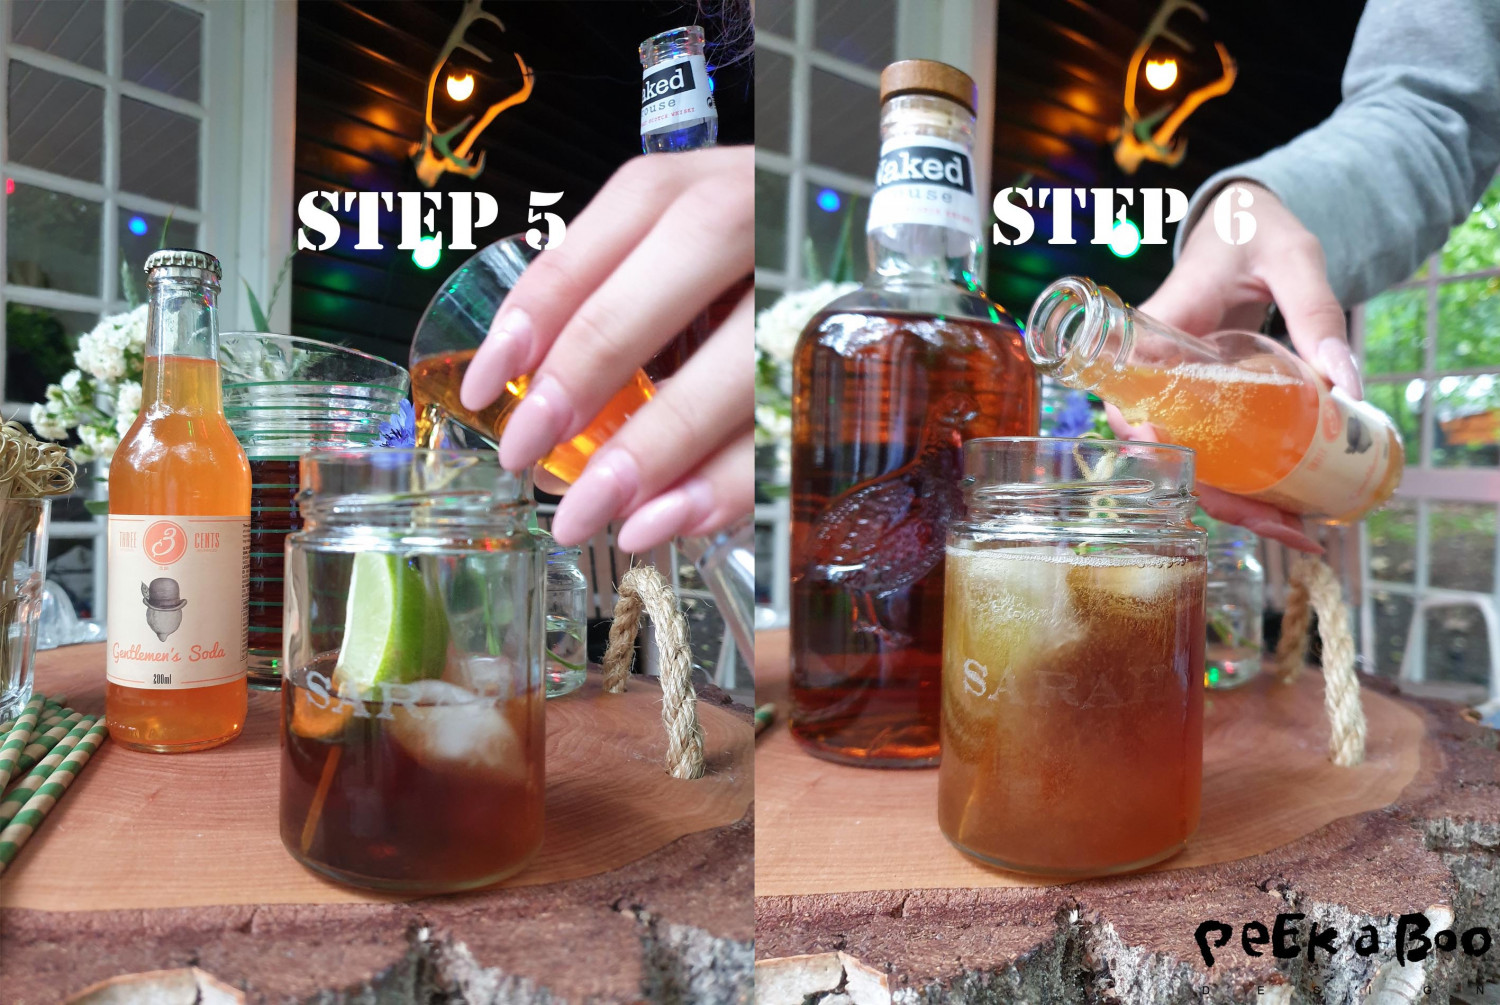 Step 5 and 6. poor the whisky over and top the drink with the Gentlemen's soda from Three Cent's.